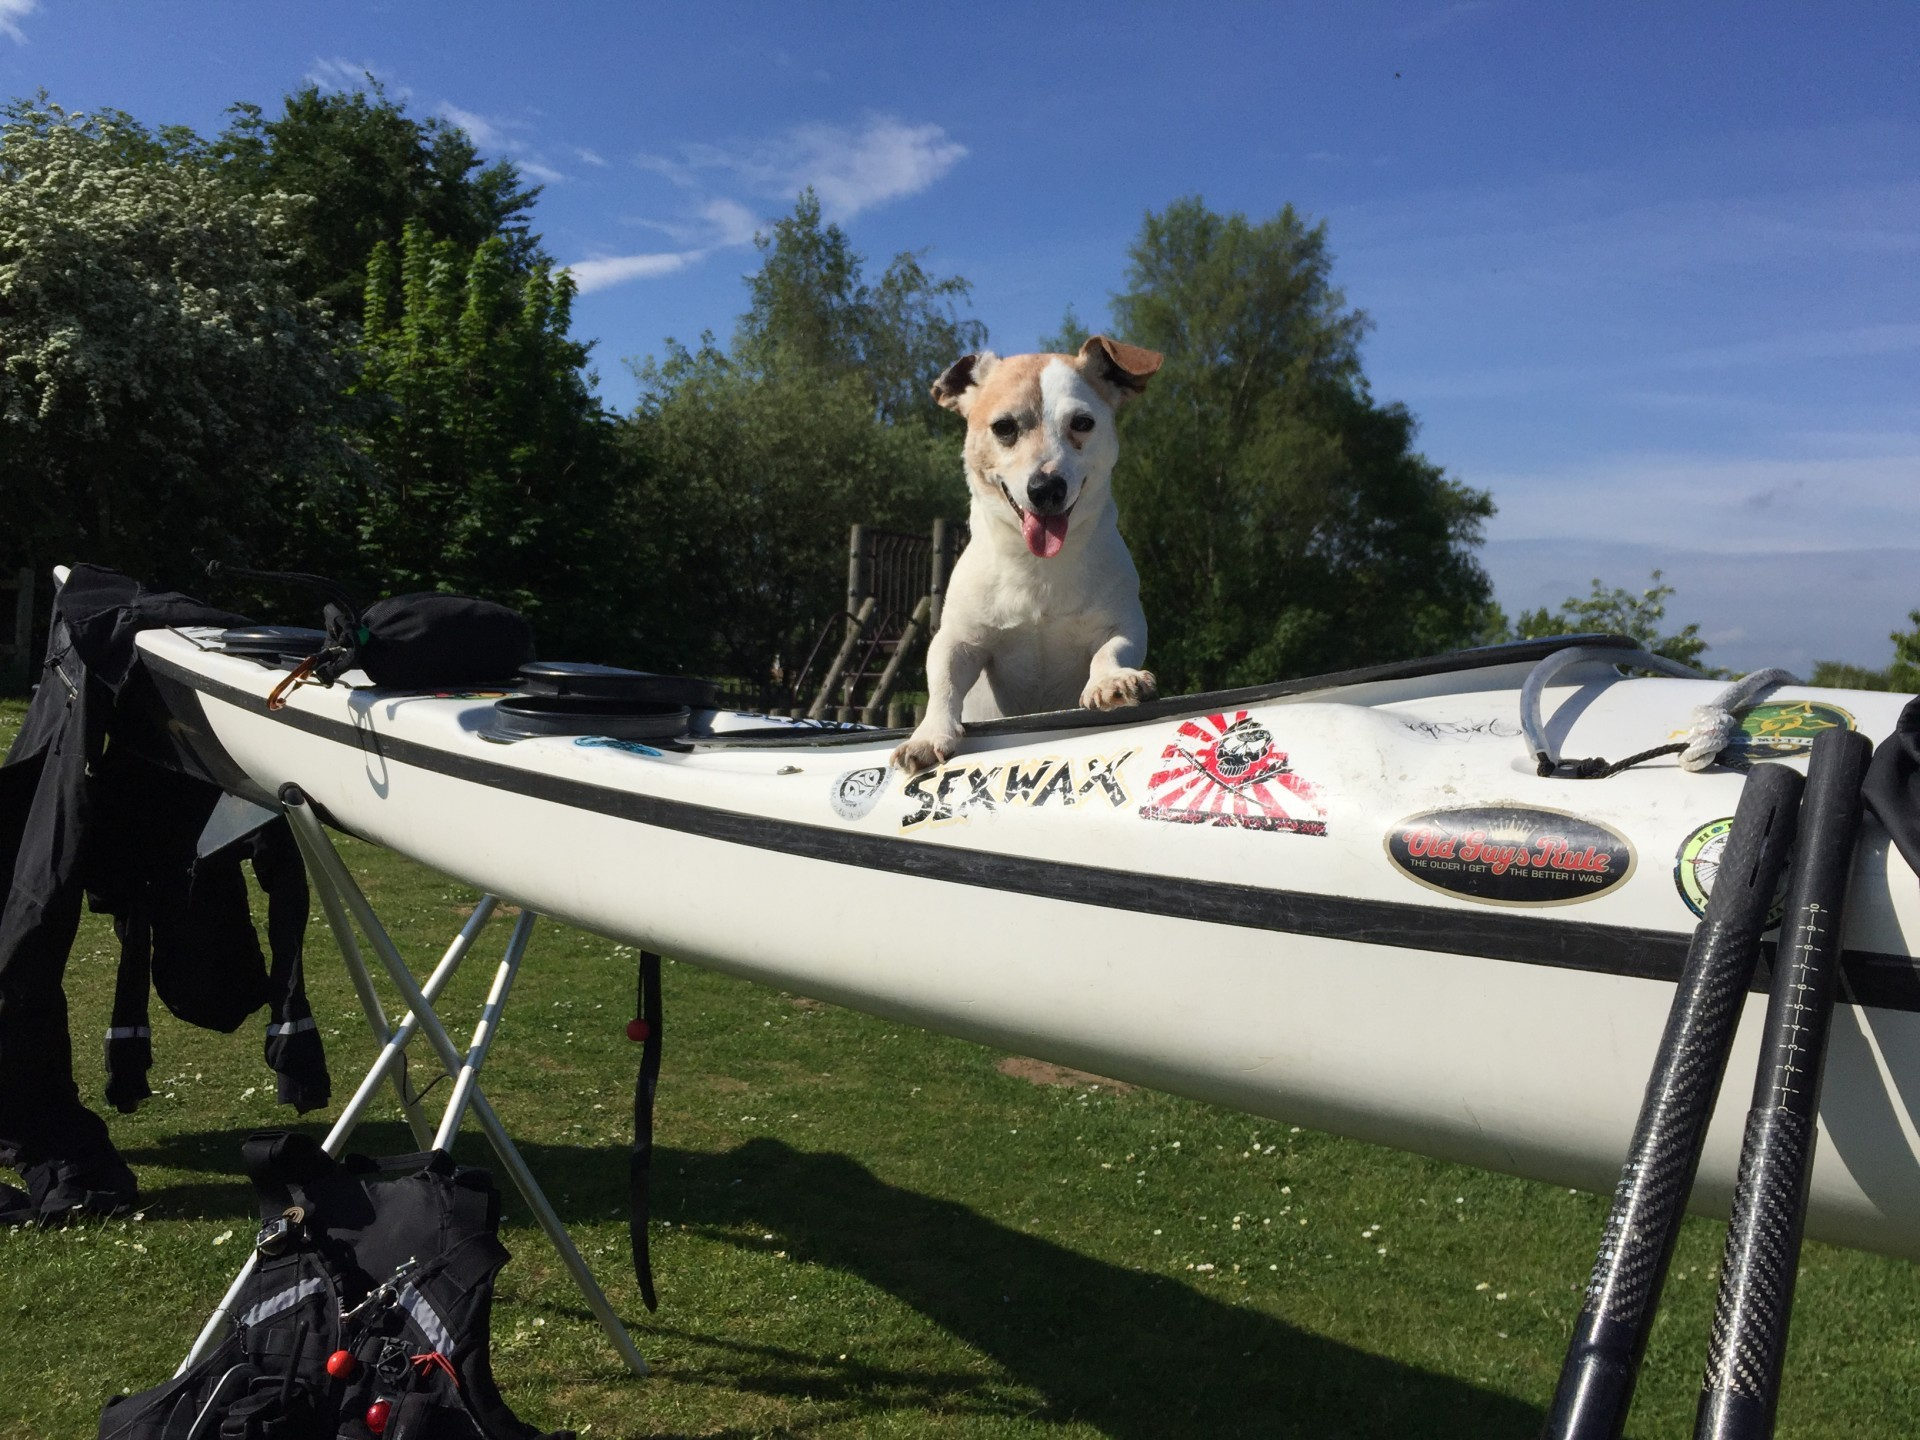 A small cute Jack Russell dog sitting in a white sea kayak